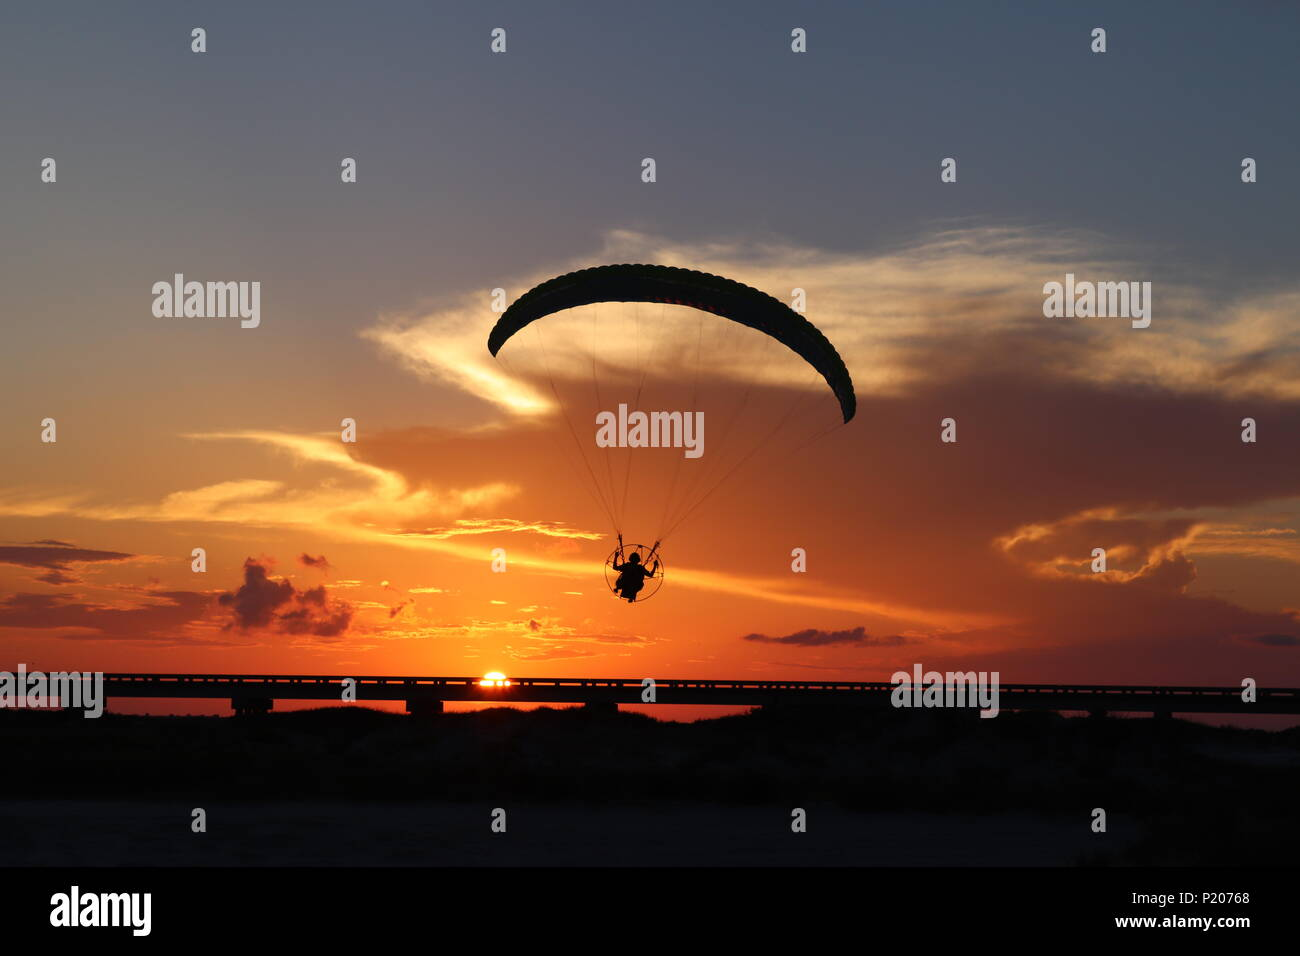 The silhouette of a powered paraglider, paramotor, in front of an orange sky in southern Texas, USA. The sun at dusk with a thundercloud cumulonimbus. - Stock Image